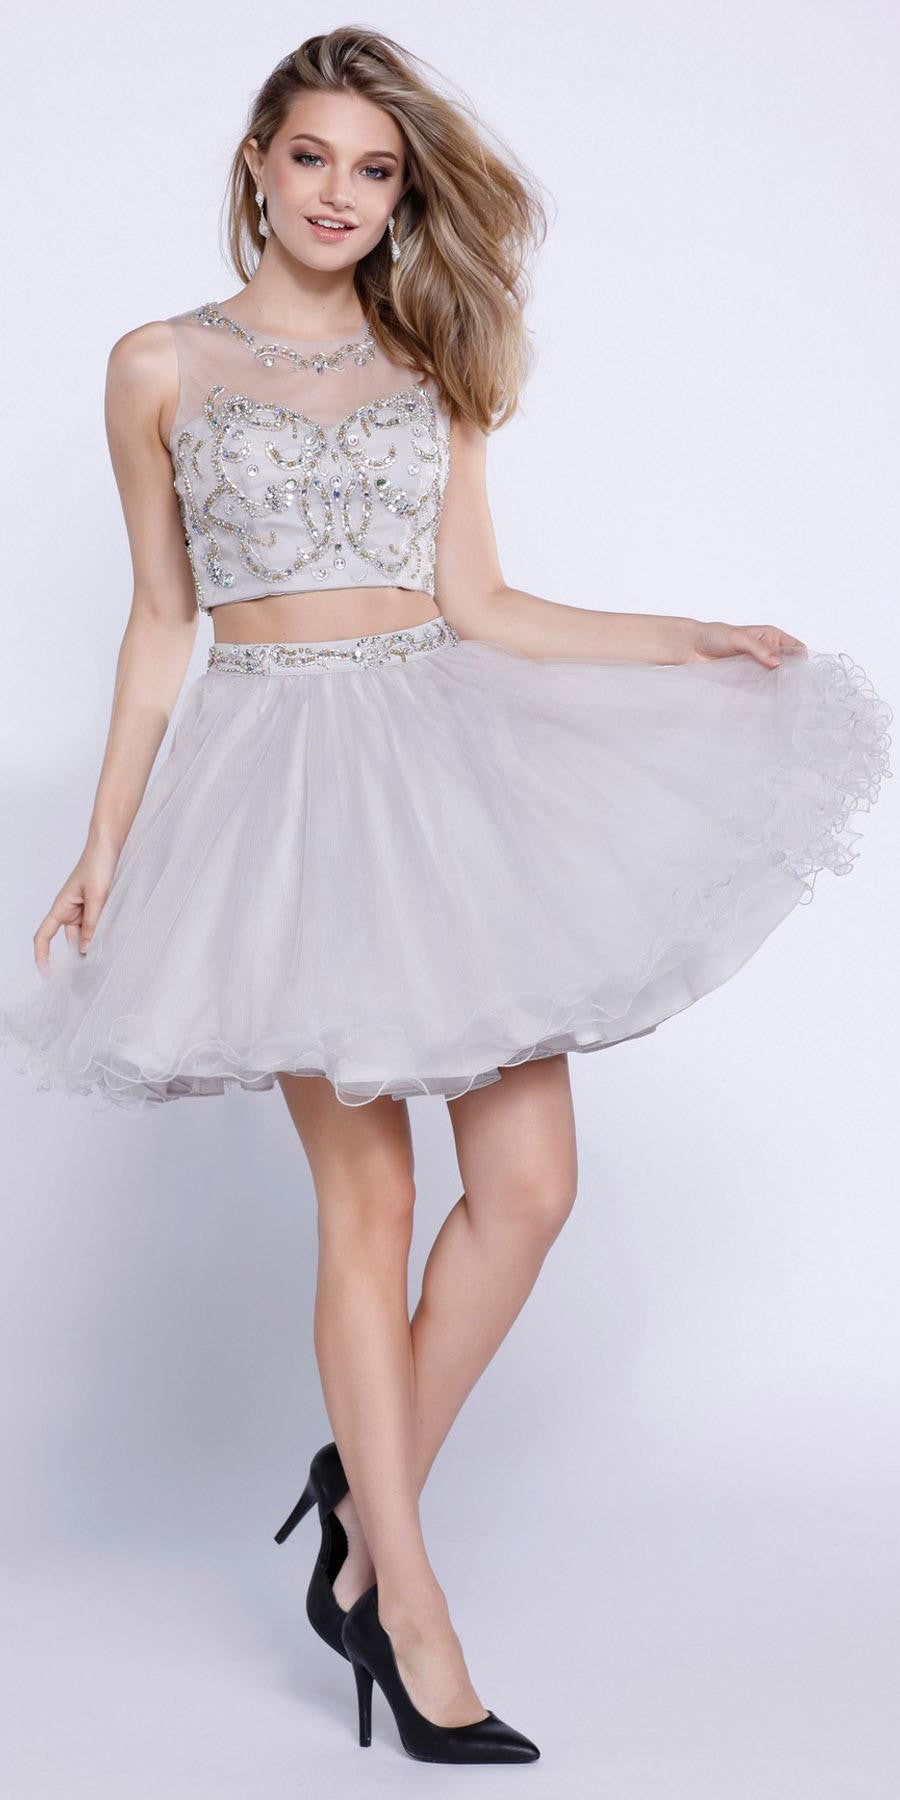 8434bf965a8 Silver Two-Piece Short Prom Dress Illusion Neckline Cut Out Back. Tap to  expand